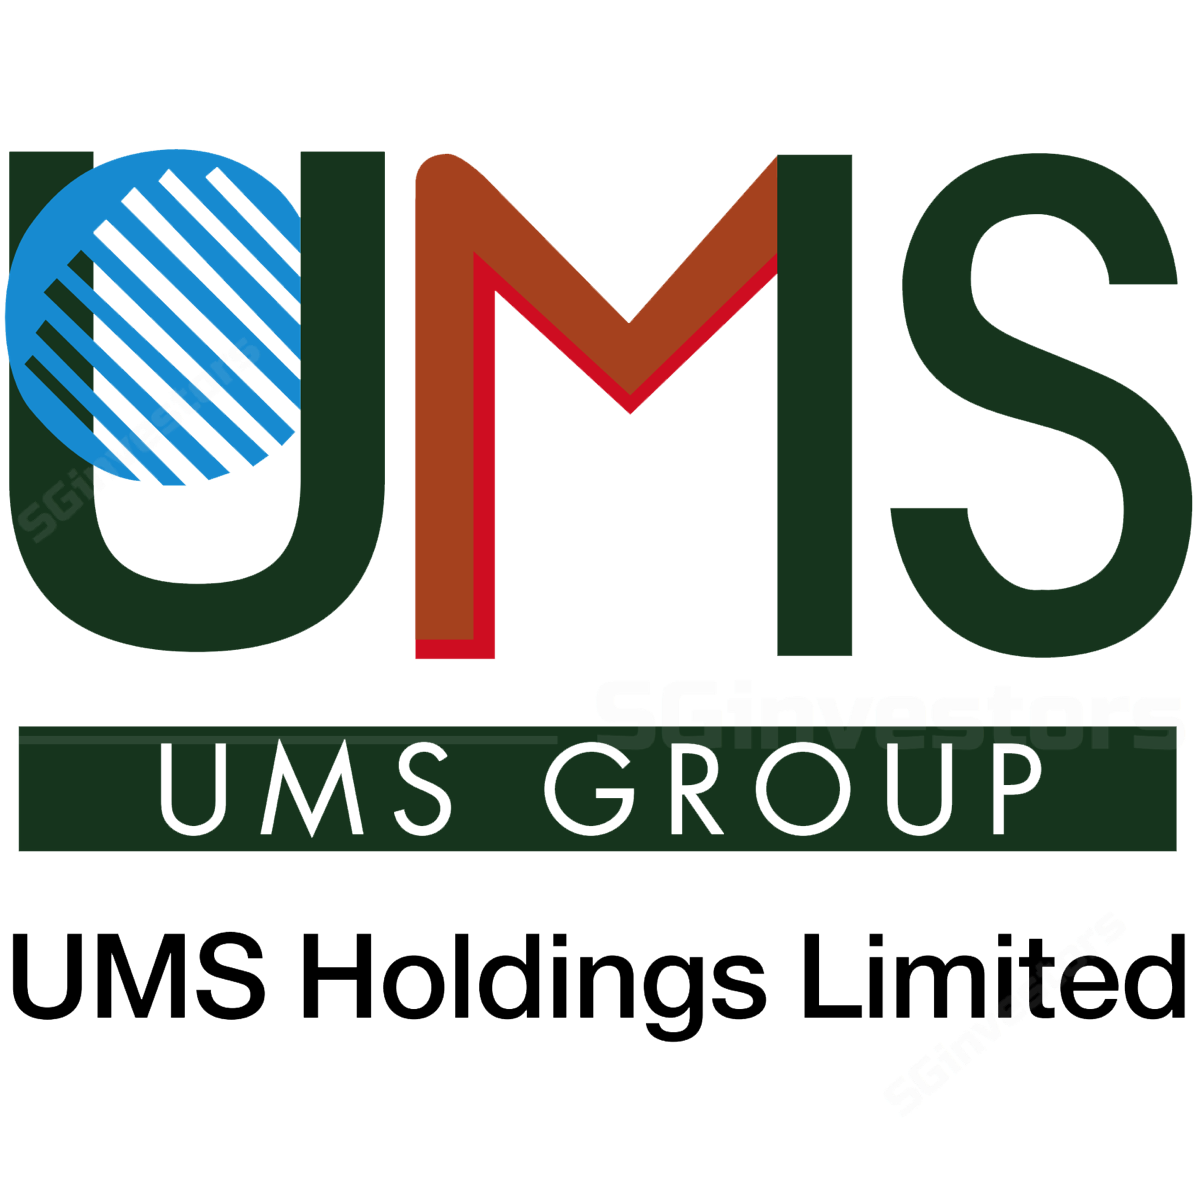 UMS Holdings - DBS Vickers 2017-03-02: Attractive takeover target